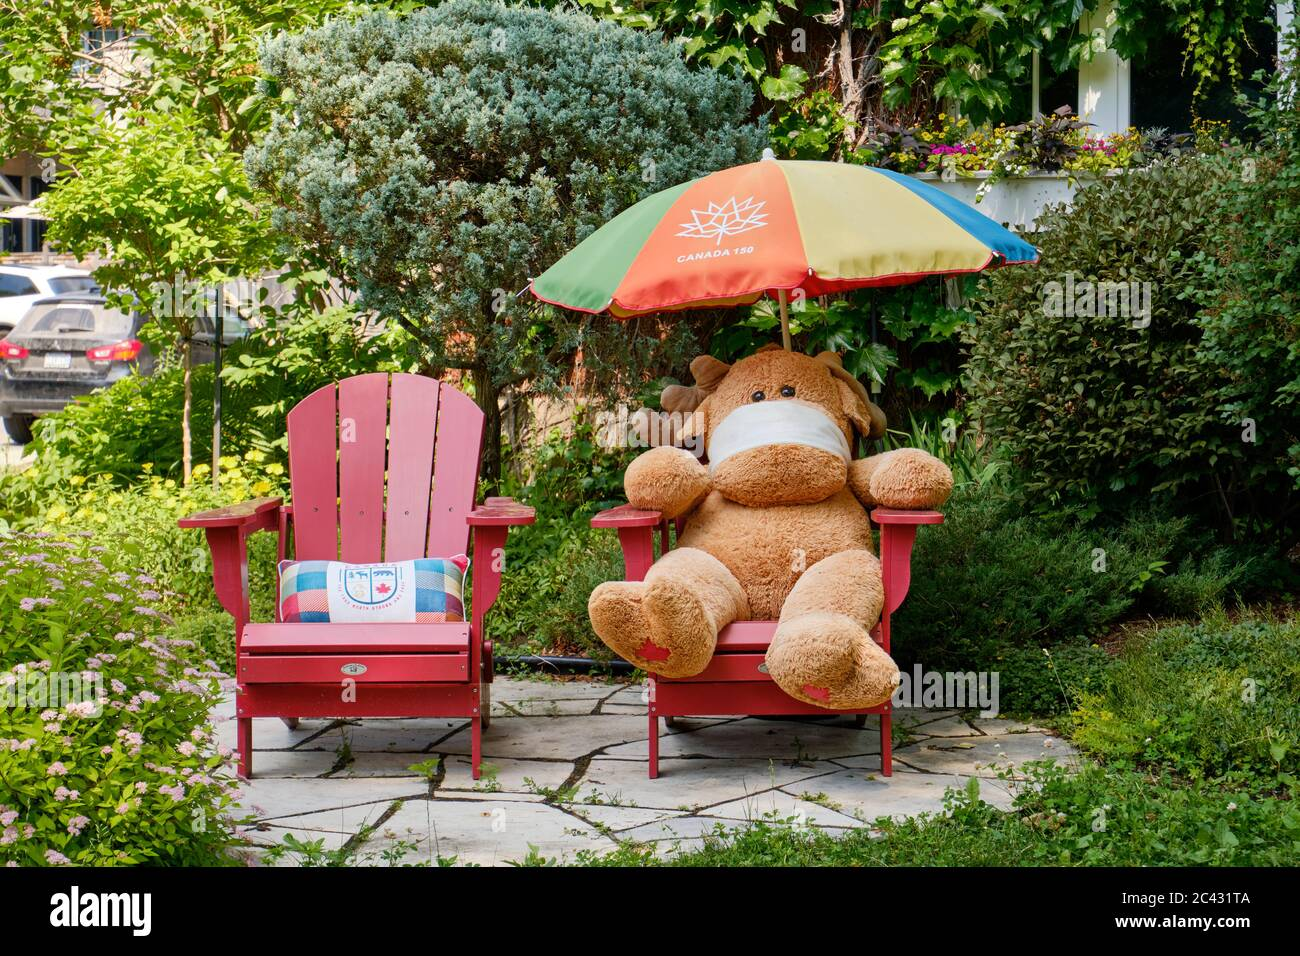 large-stuffed-moose-with-face-covering-sitting-a-lawn-chair-as-a-display-in-front-yard-of-ottawa-home-2C431TA.jpg